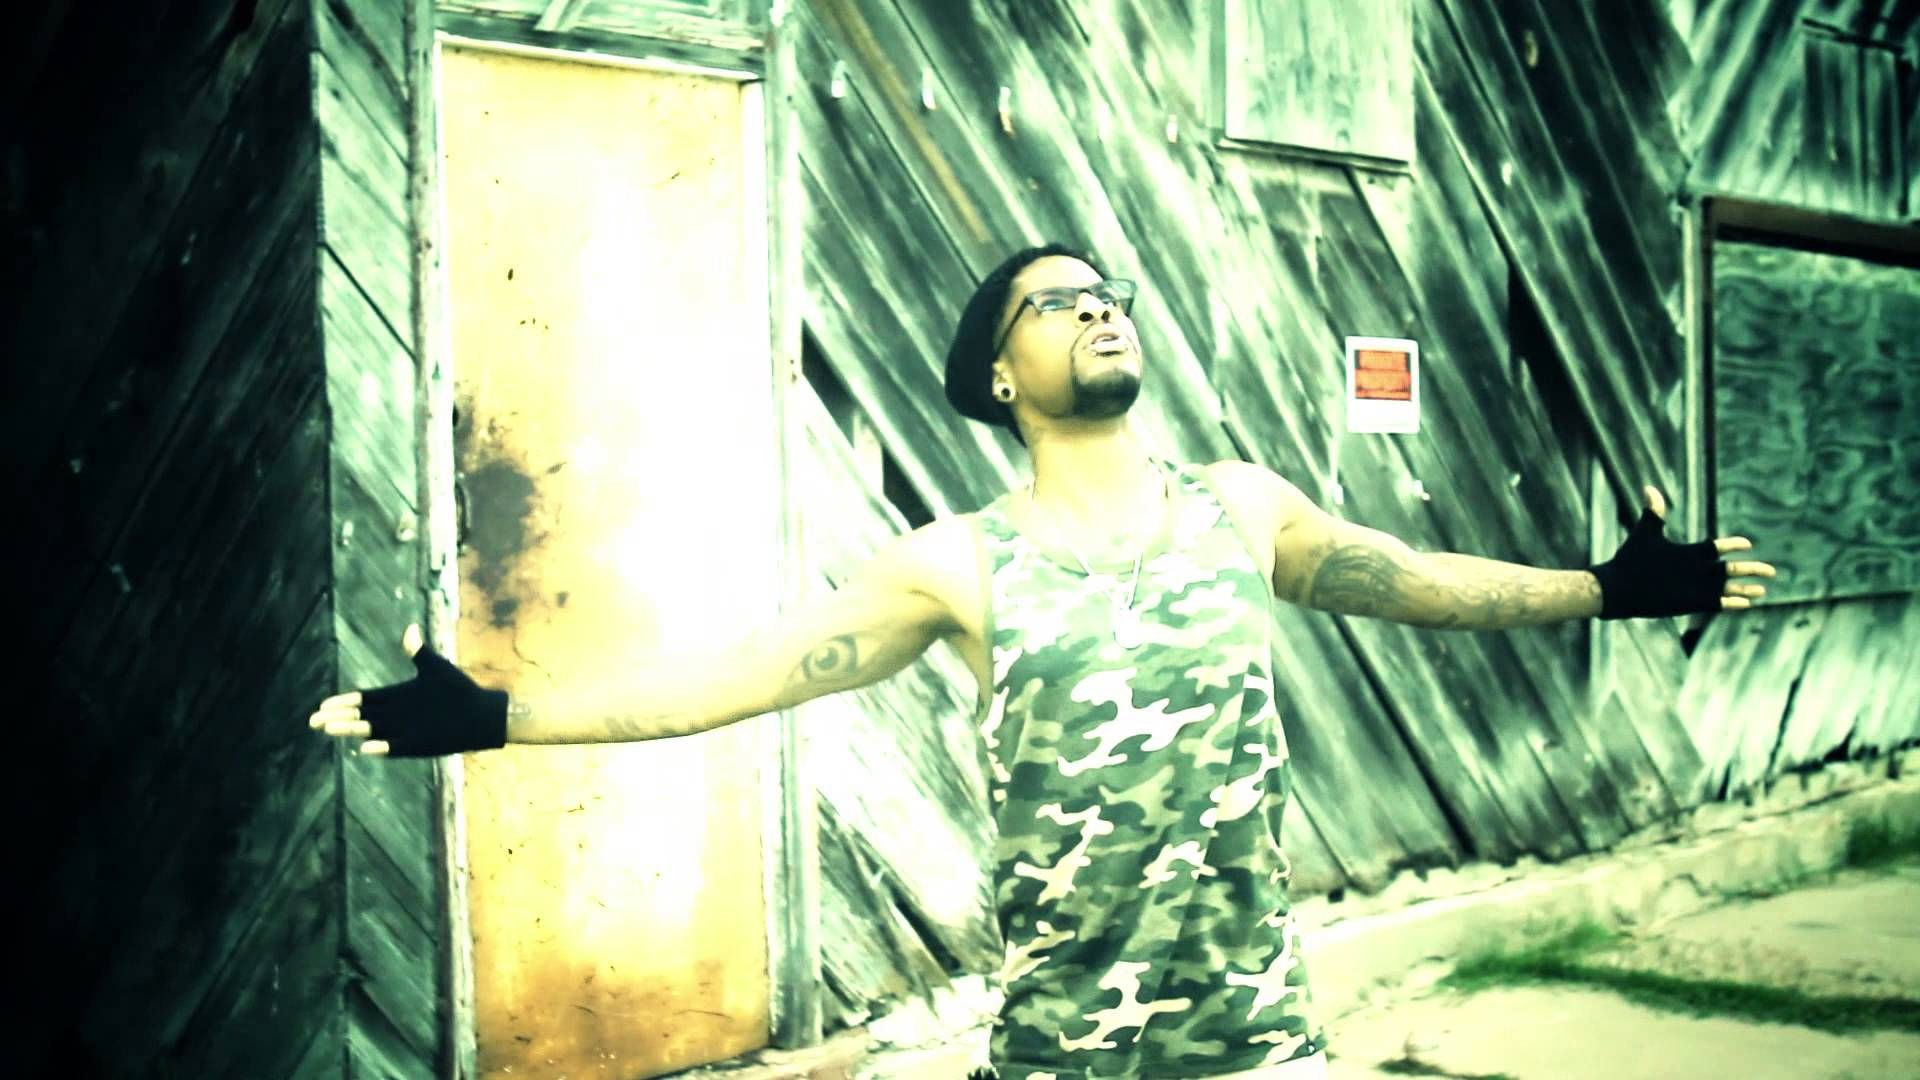 UnderDog - {Official Music Video} - Ma'Zek © 2013 Im an underdog and ready and willing to enlist....Peace from the CRAZY ONE